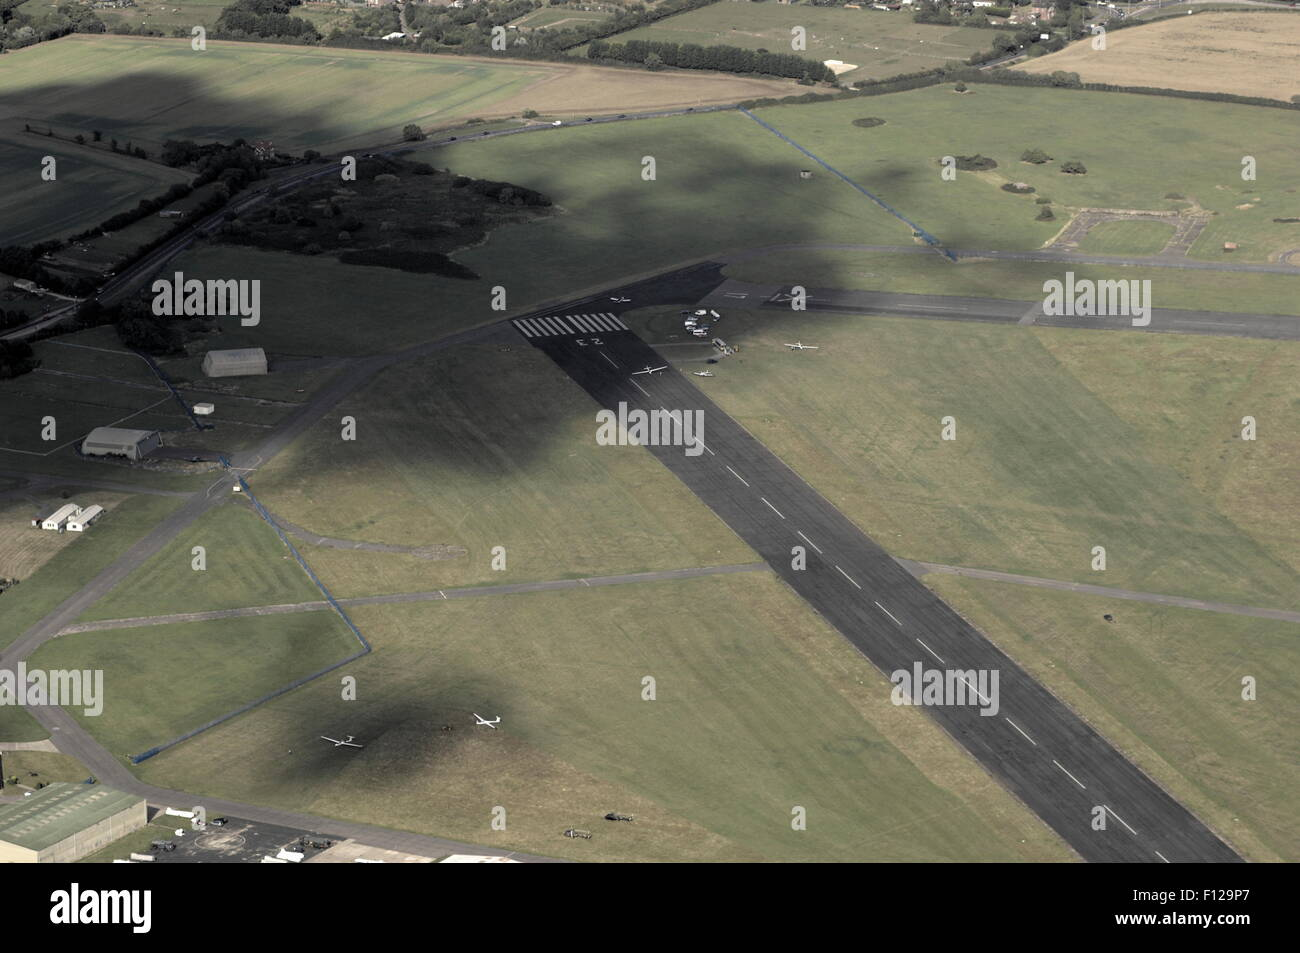 AJAXNETPHOTO. 2011. LEE ON SOLENT, ENGLAND. - AERIAL VIEW - LOOKING NORTH EAST SHOWING PART OF MAIN RUNWAY AND AIRFIELD - Stock Image